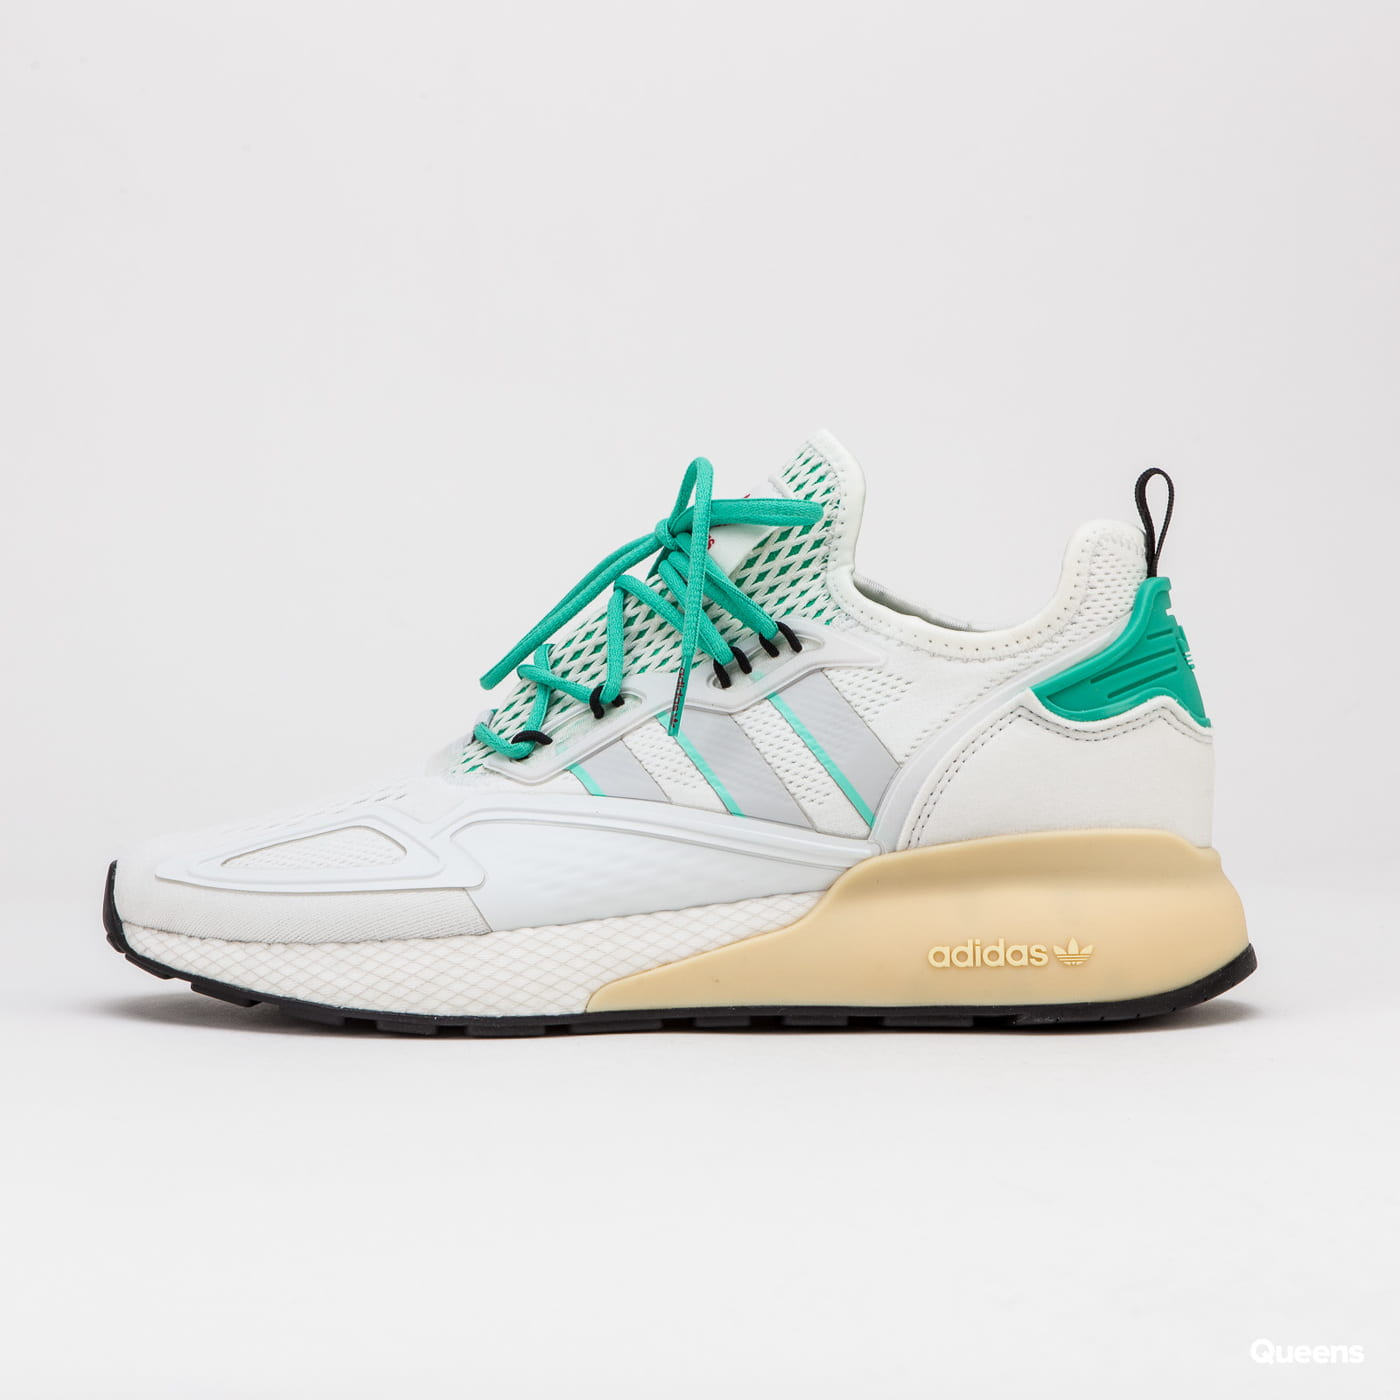 precoz suspender Descenso repentino  Sneakers adidas Originals ZX 2K Boost (FX4172) – Queens 💚